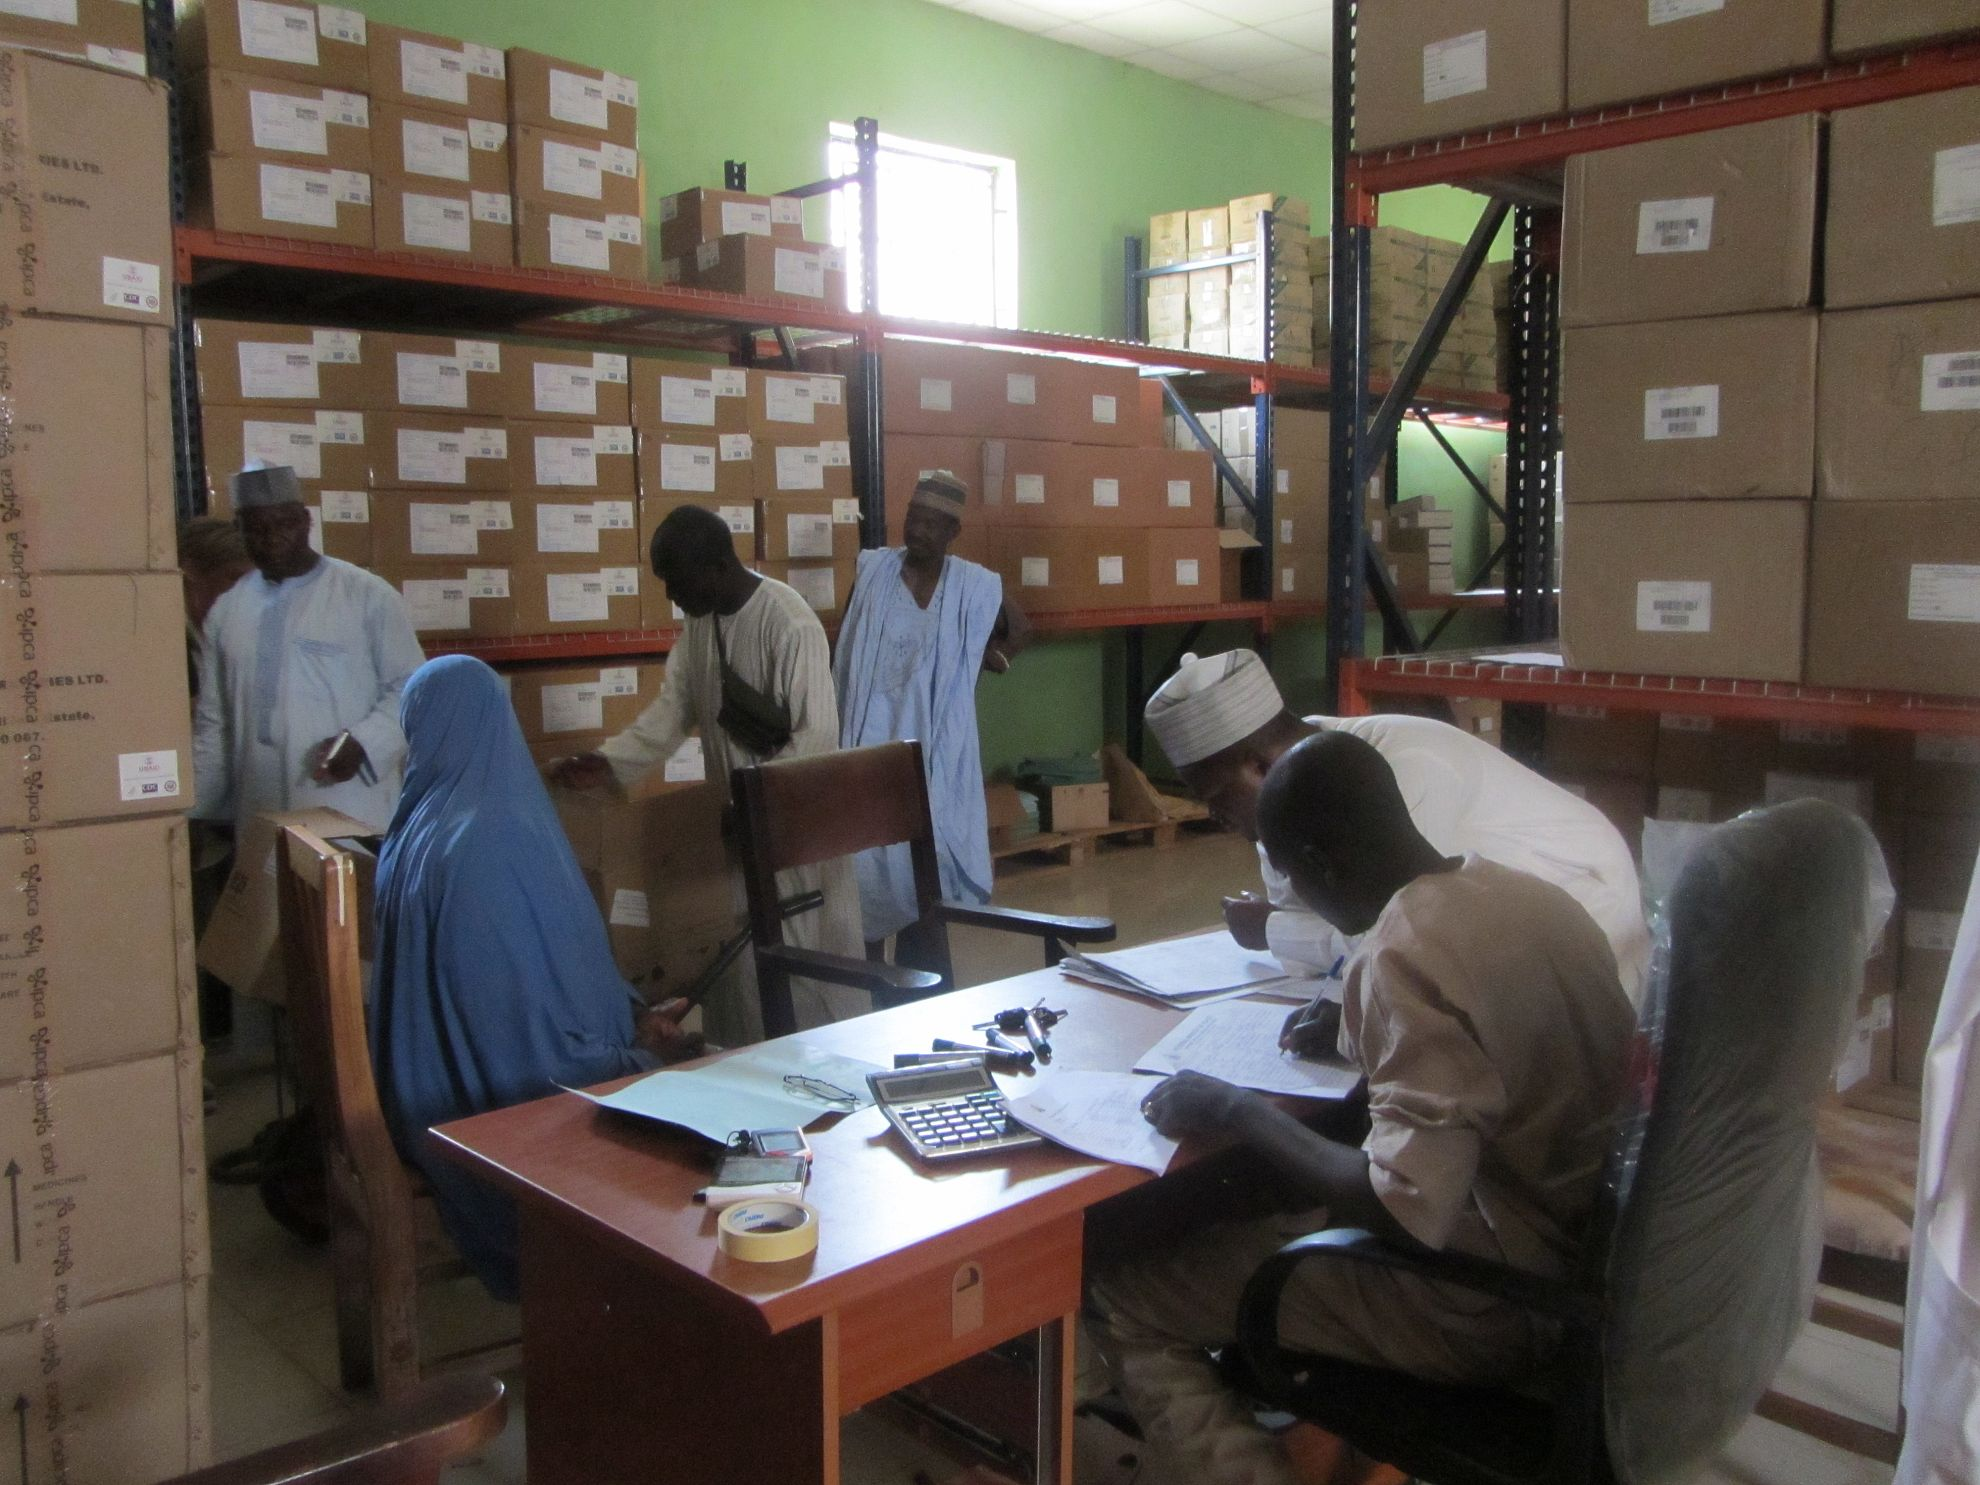 Latest News Management sciences for health msh launches costing surveys in access smc countries